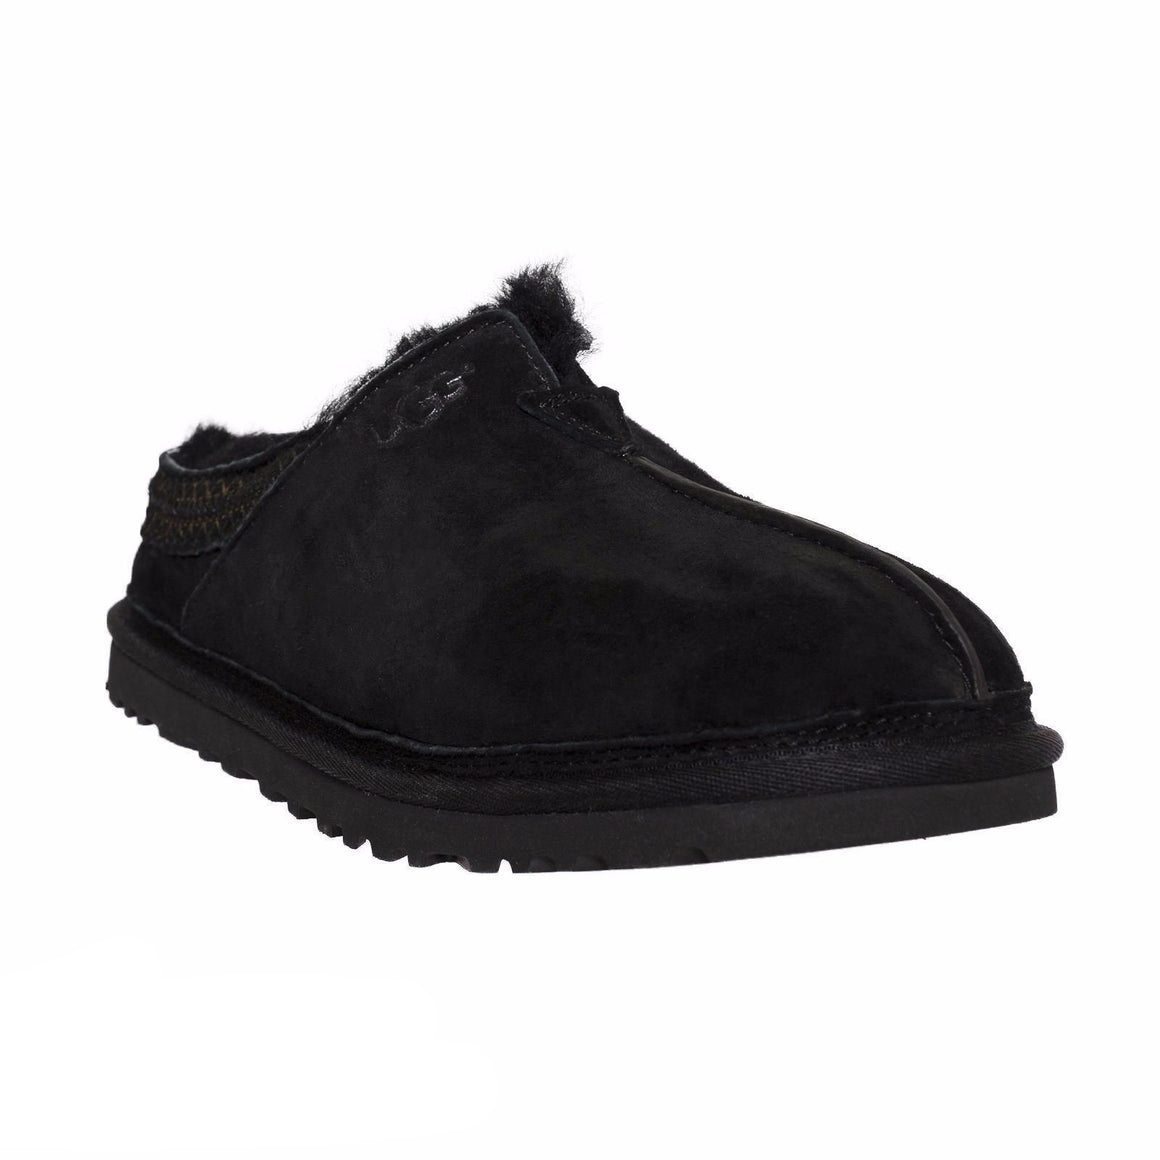 UGG Neuman Black Slippers